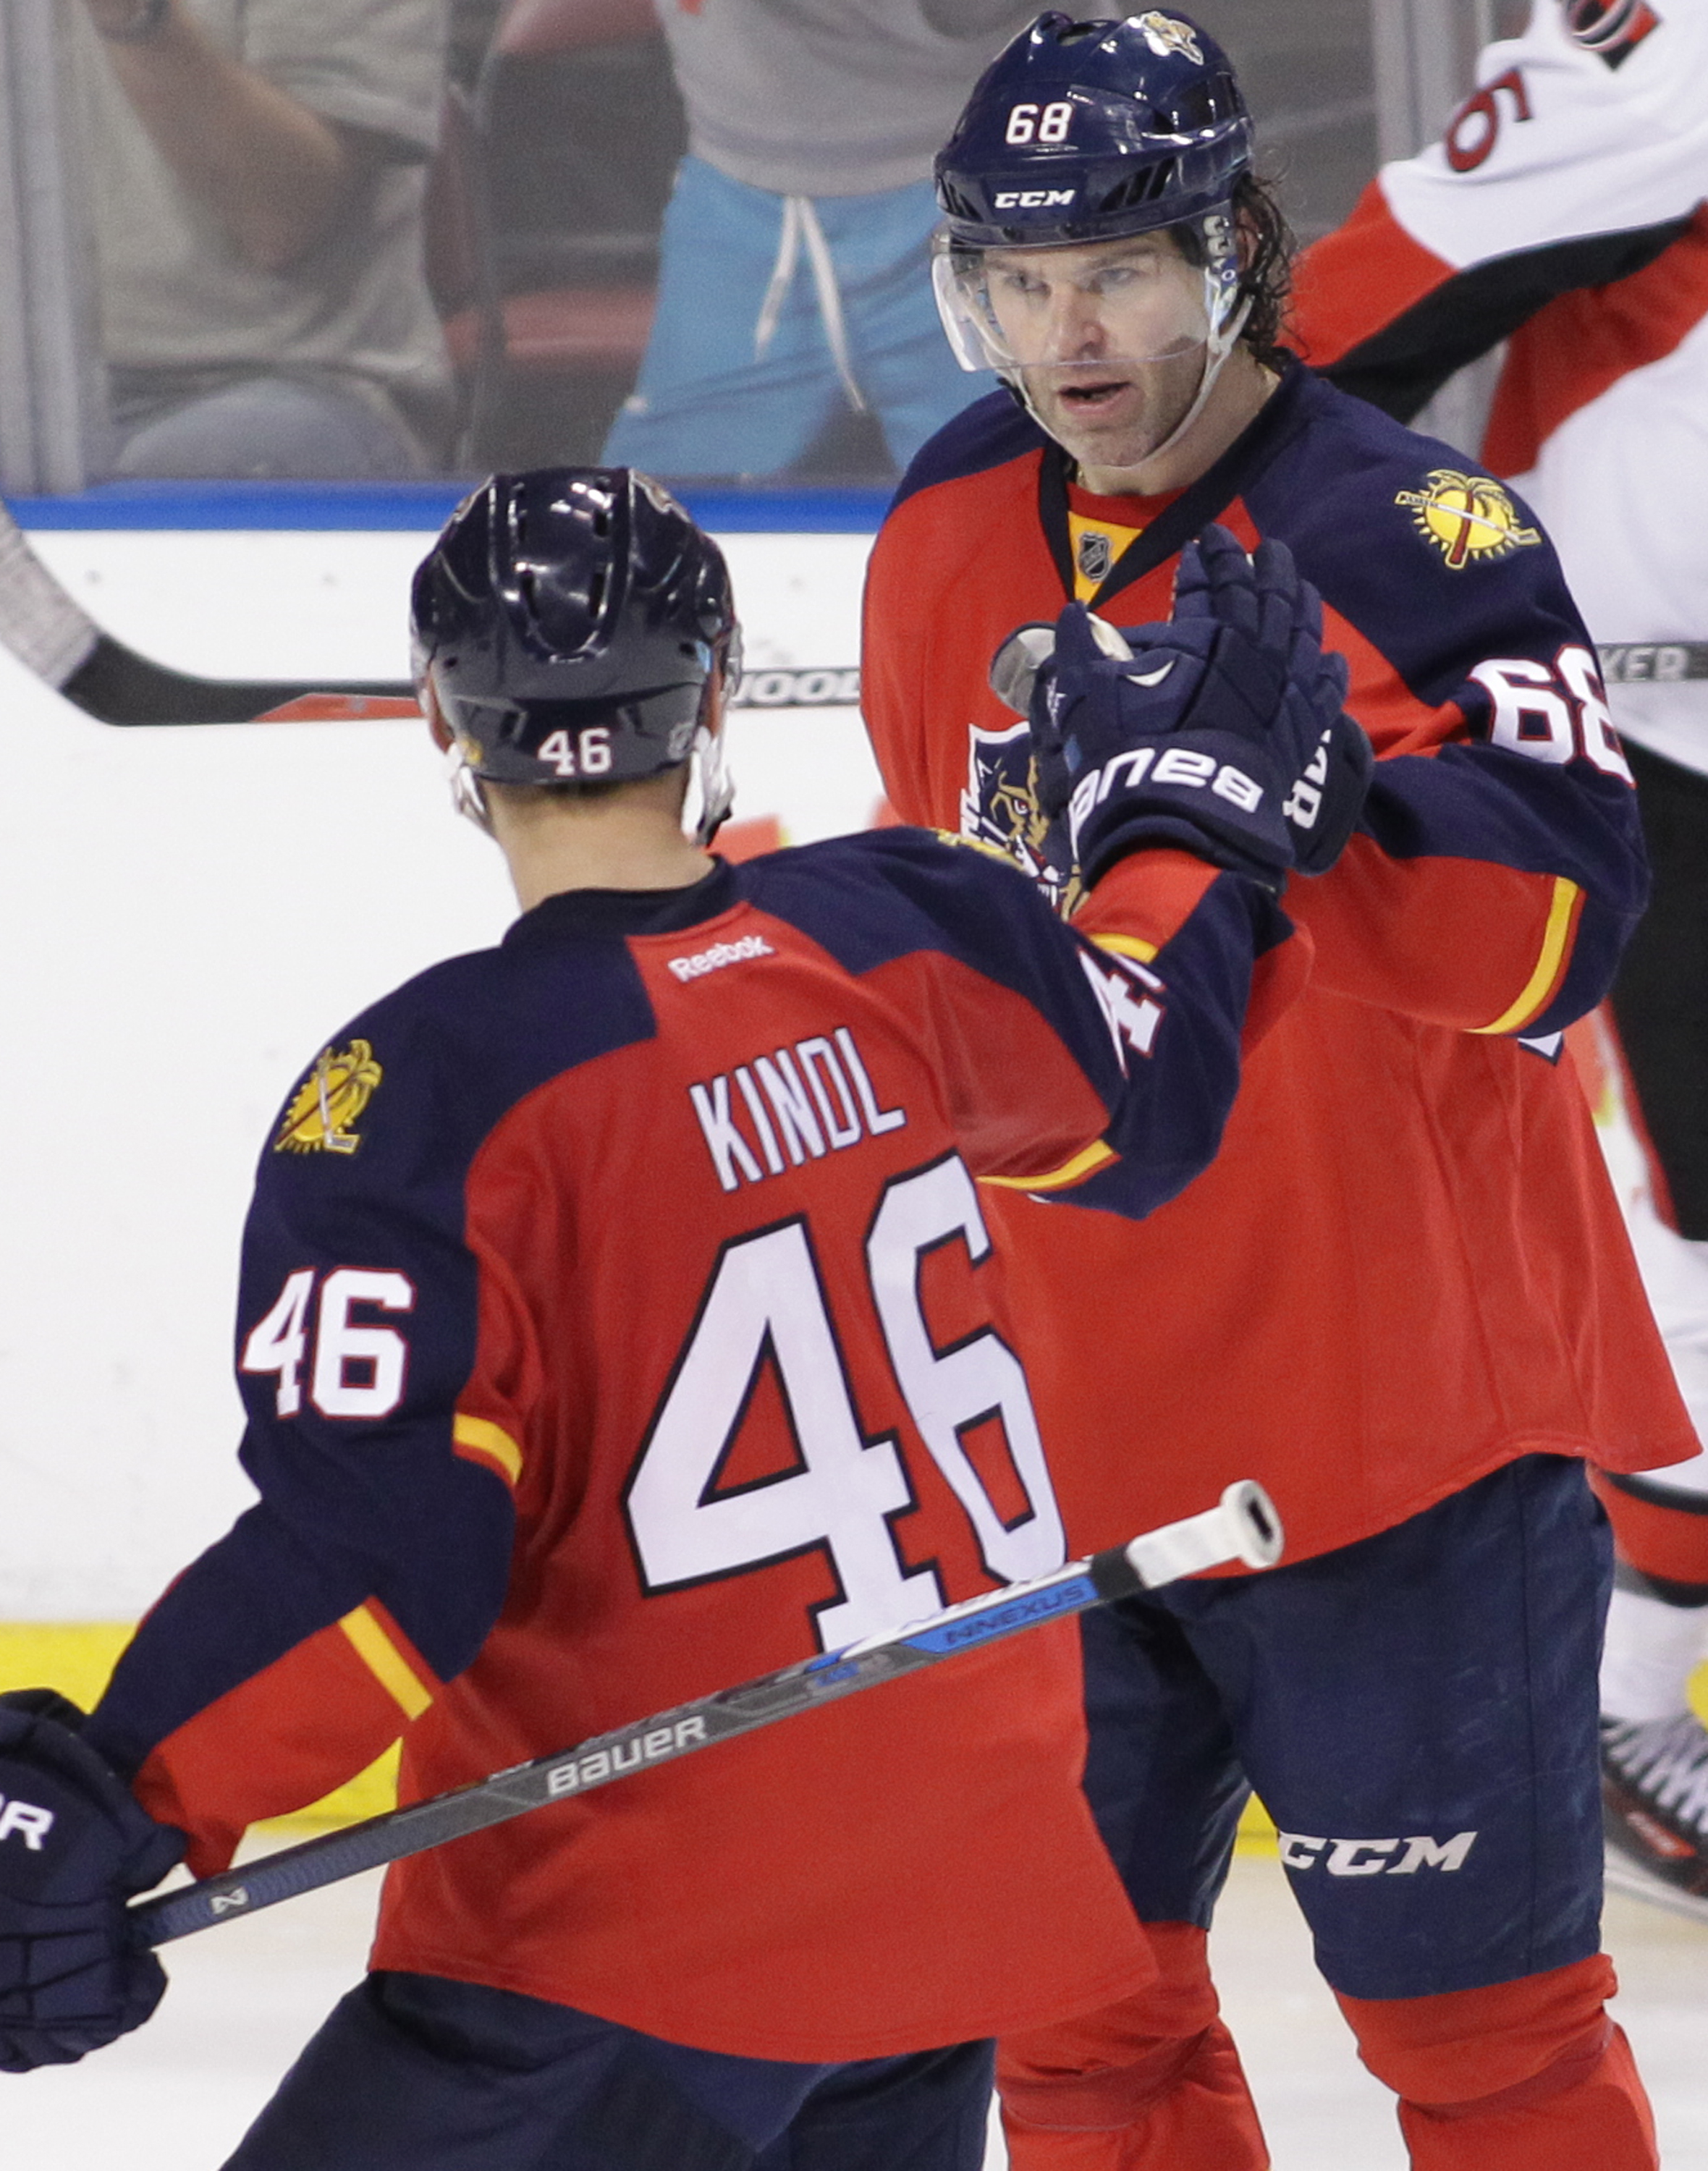 Florida Panthers' Jaromir Jagr, right, celebrates with teammate Jakub Kindl (46), of the Czech Republic, after scoring a goal during the third period of an NHL hockey game against the Ottawa Senators, Thursday, March 10, 2016 in Sunrise, Fla. The Panthers